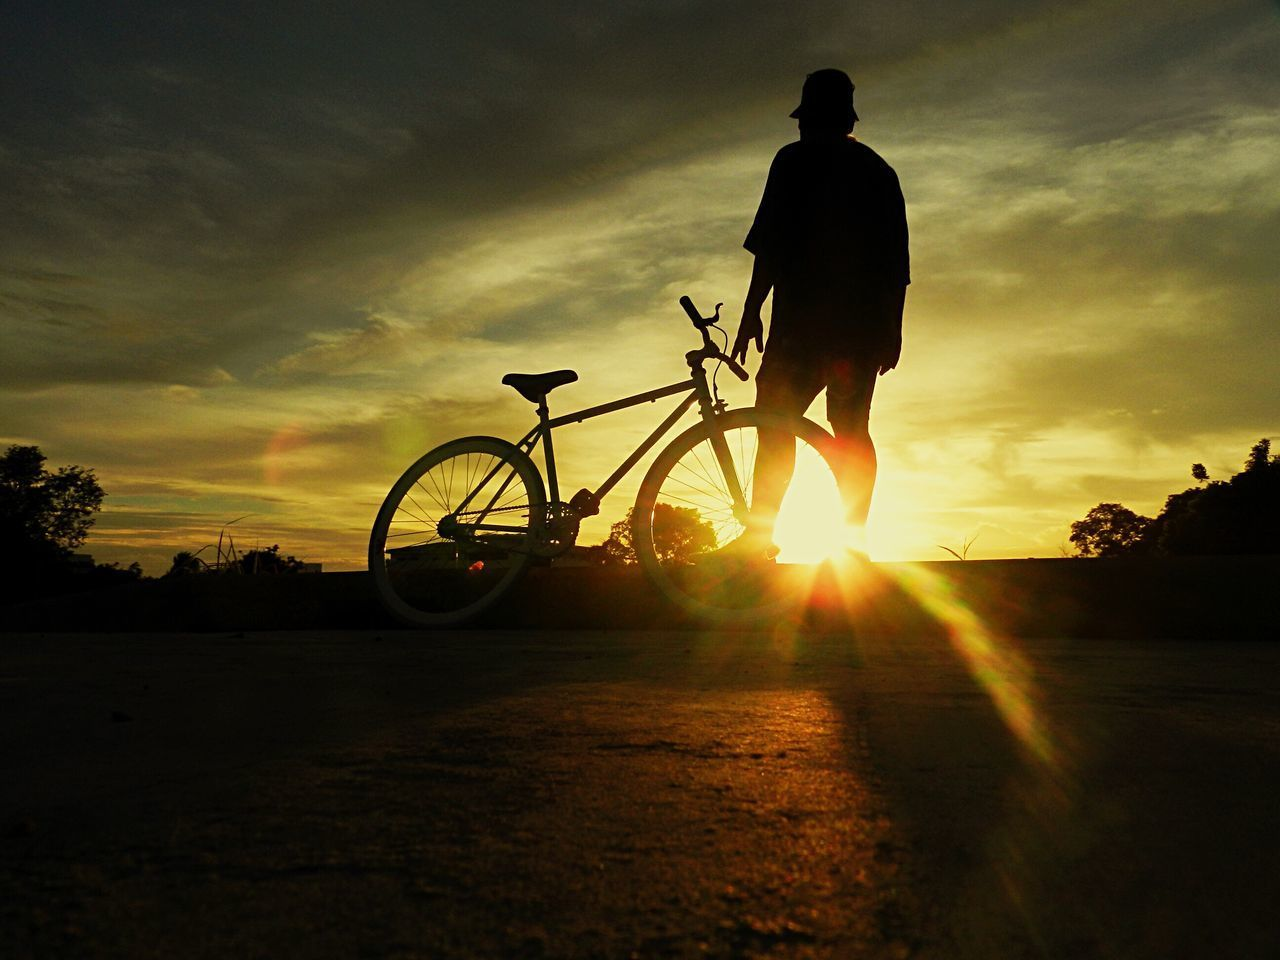 sunset, silhouette, bicycle, sunbeam, sky, sun, real people, transportation, lens flare, sunlight, land vehicle, mode of transport, full length, leisure activity, cloud - sky, cycling, men, one person, lifestyles, nature, outdoors, scenics, beauty in nature, tree, day, people